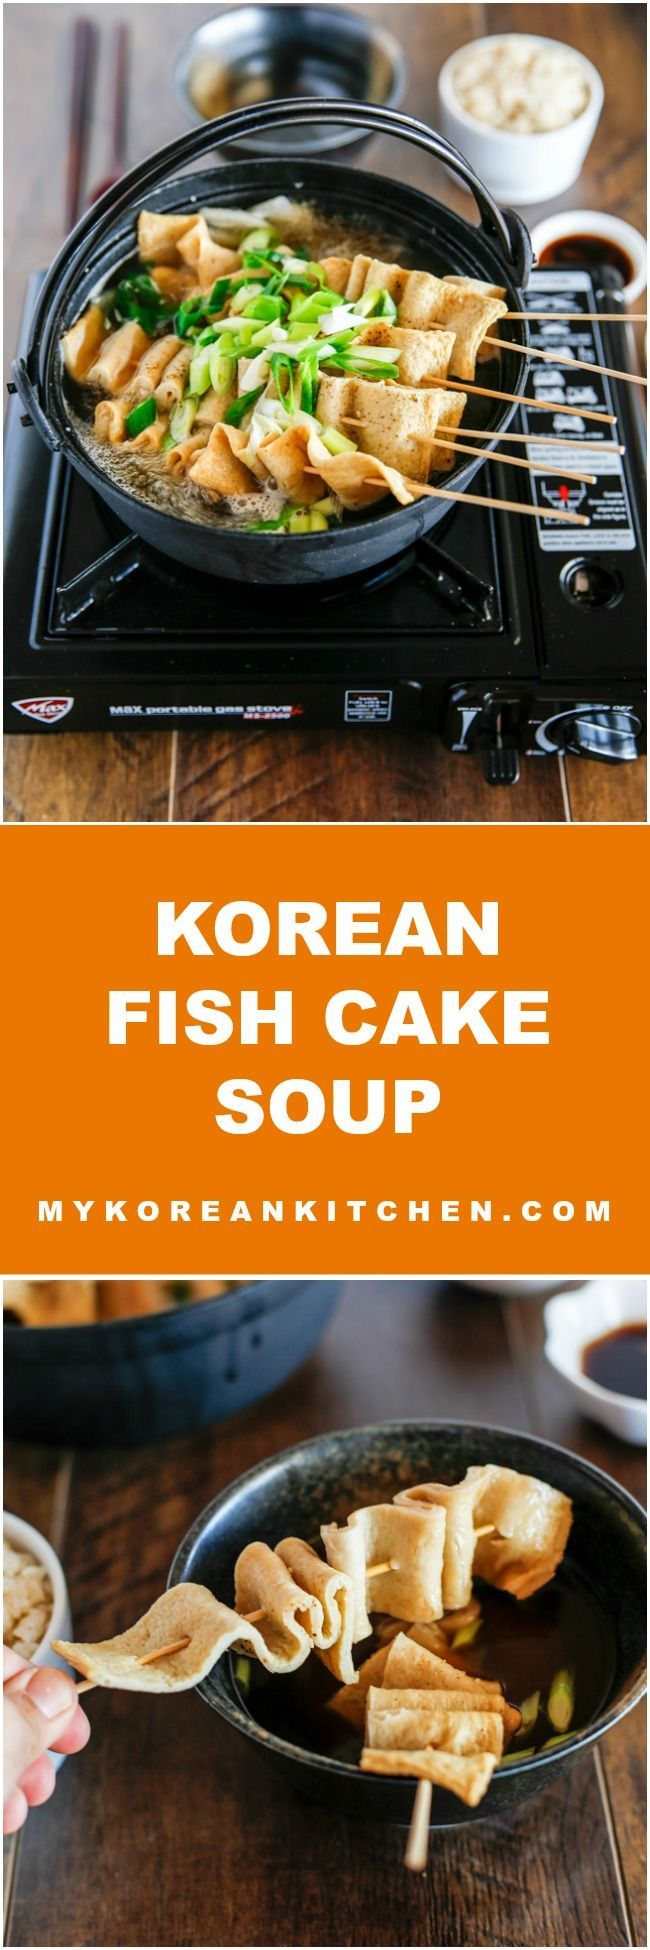 Refreshing, tasty and comforting Korean fish cake soup | MyKoreanKitchen.com